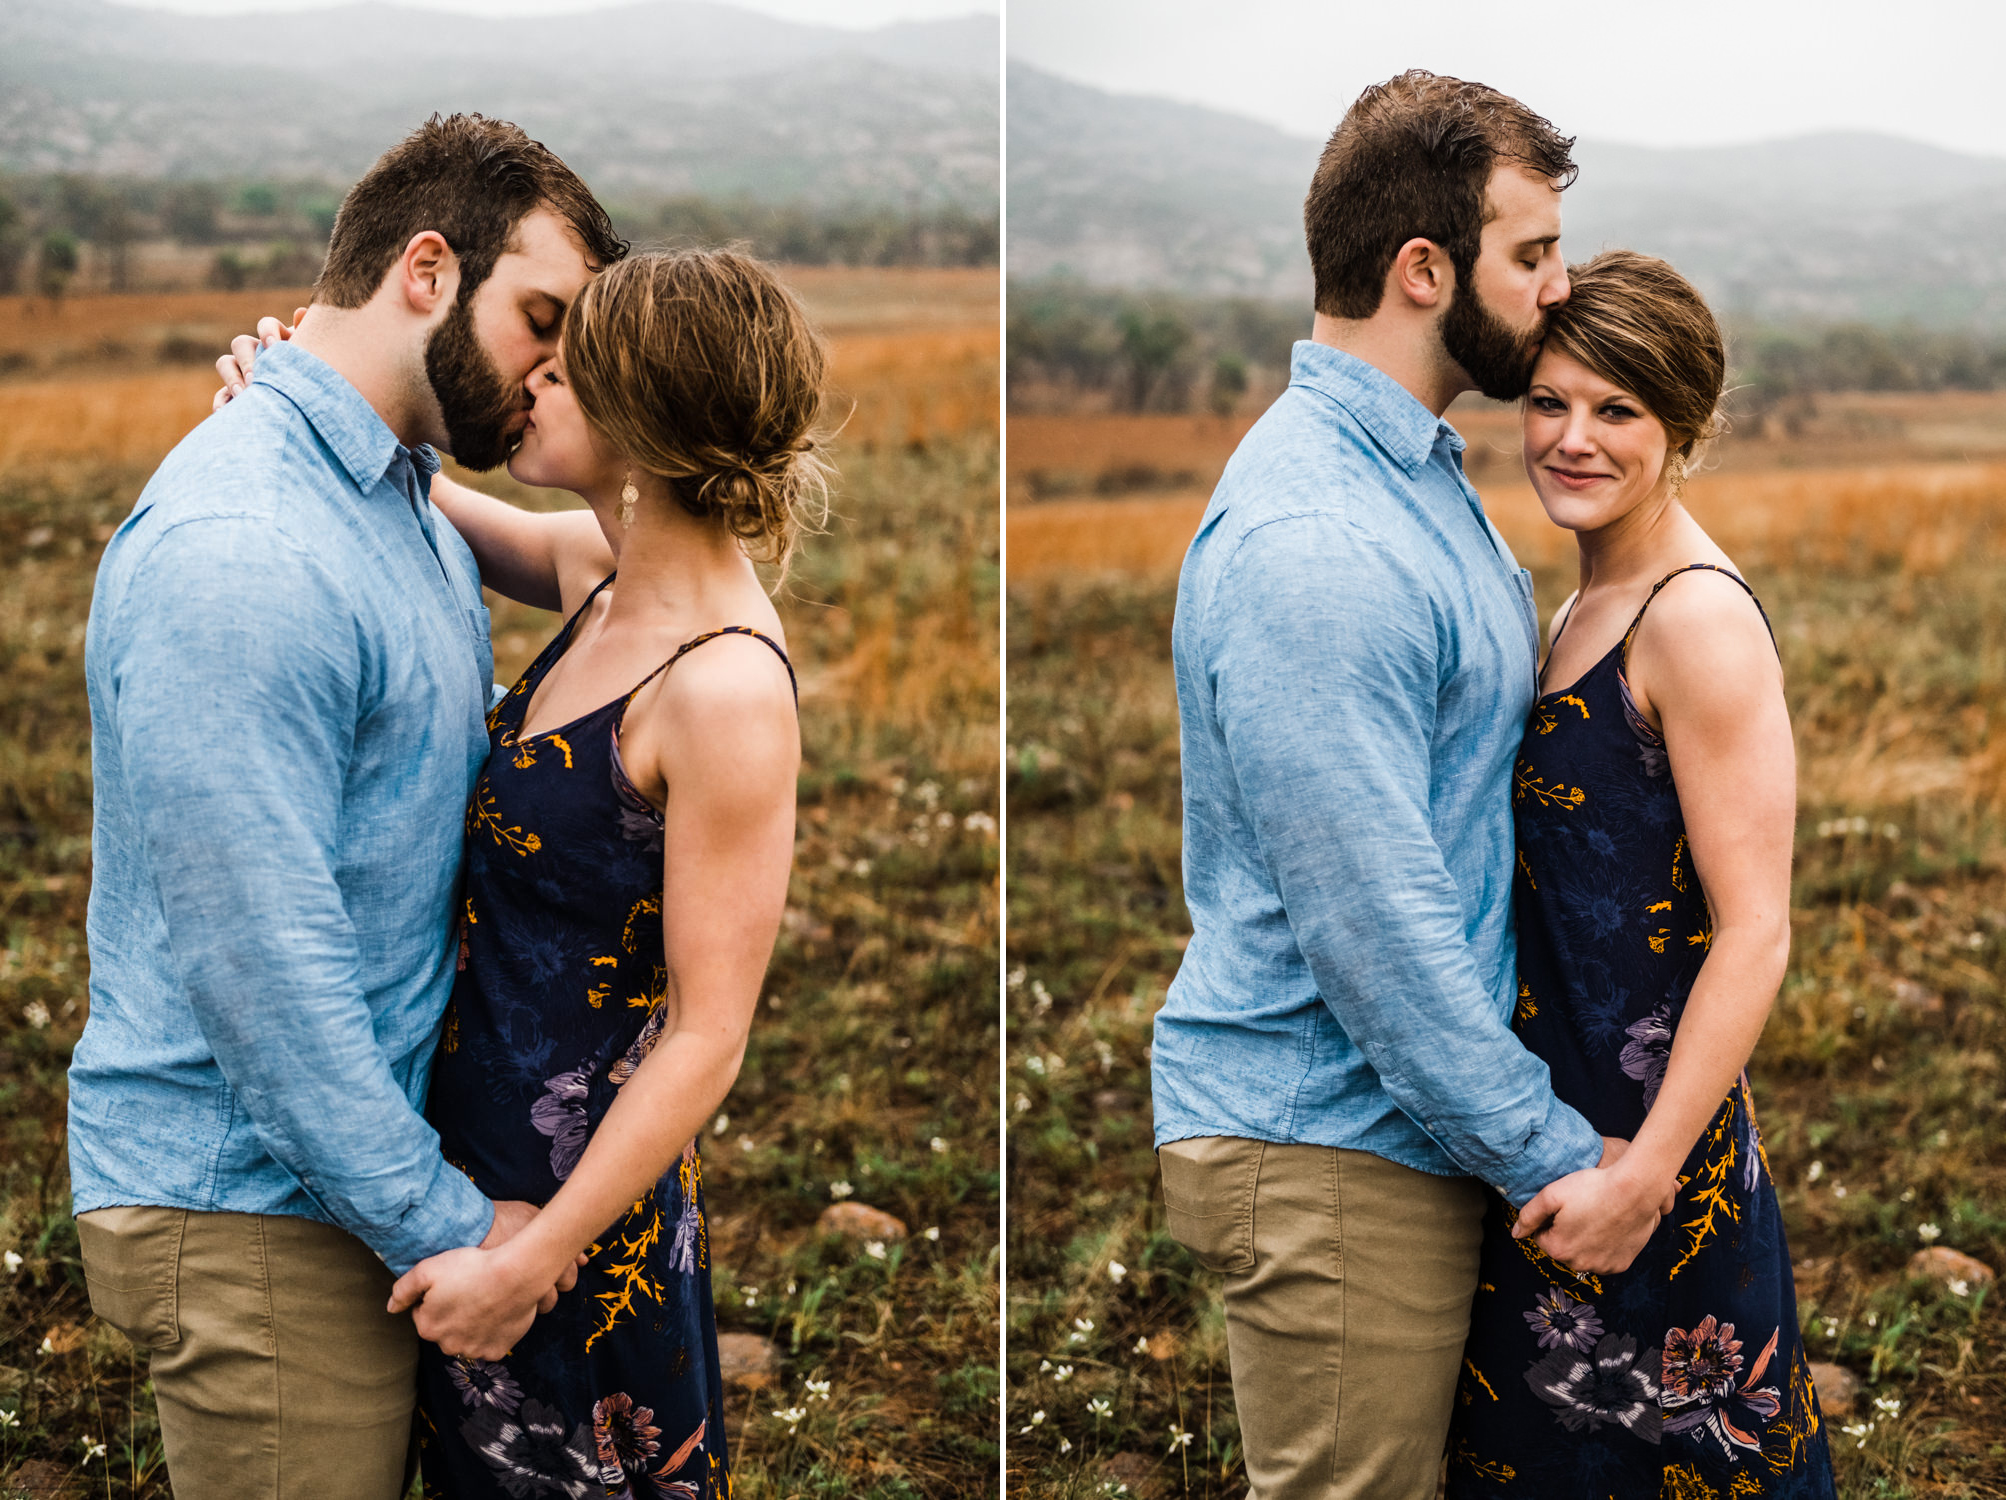 Oklahoma Engagement-Neal Dieker-Oklahoma Wedding Photography-Wichita Mountains-Wichita, Kansas Portrait Photographer-181.jpg